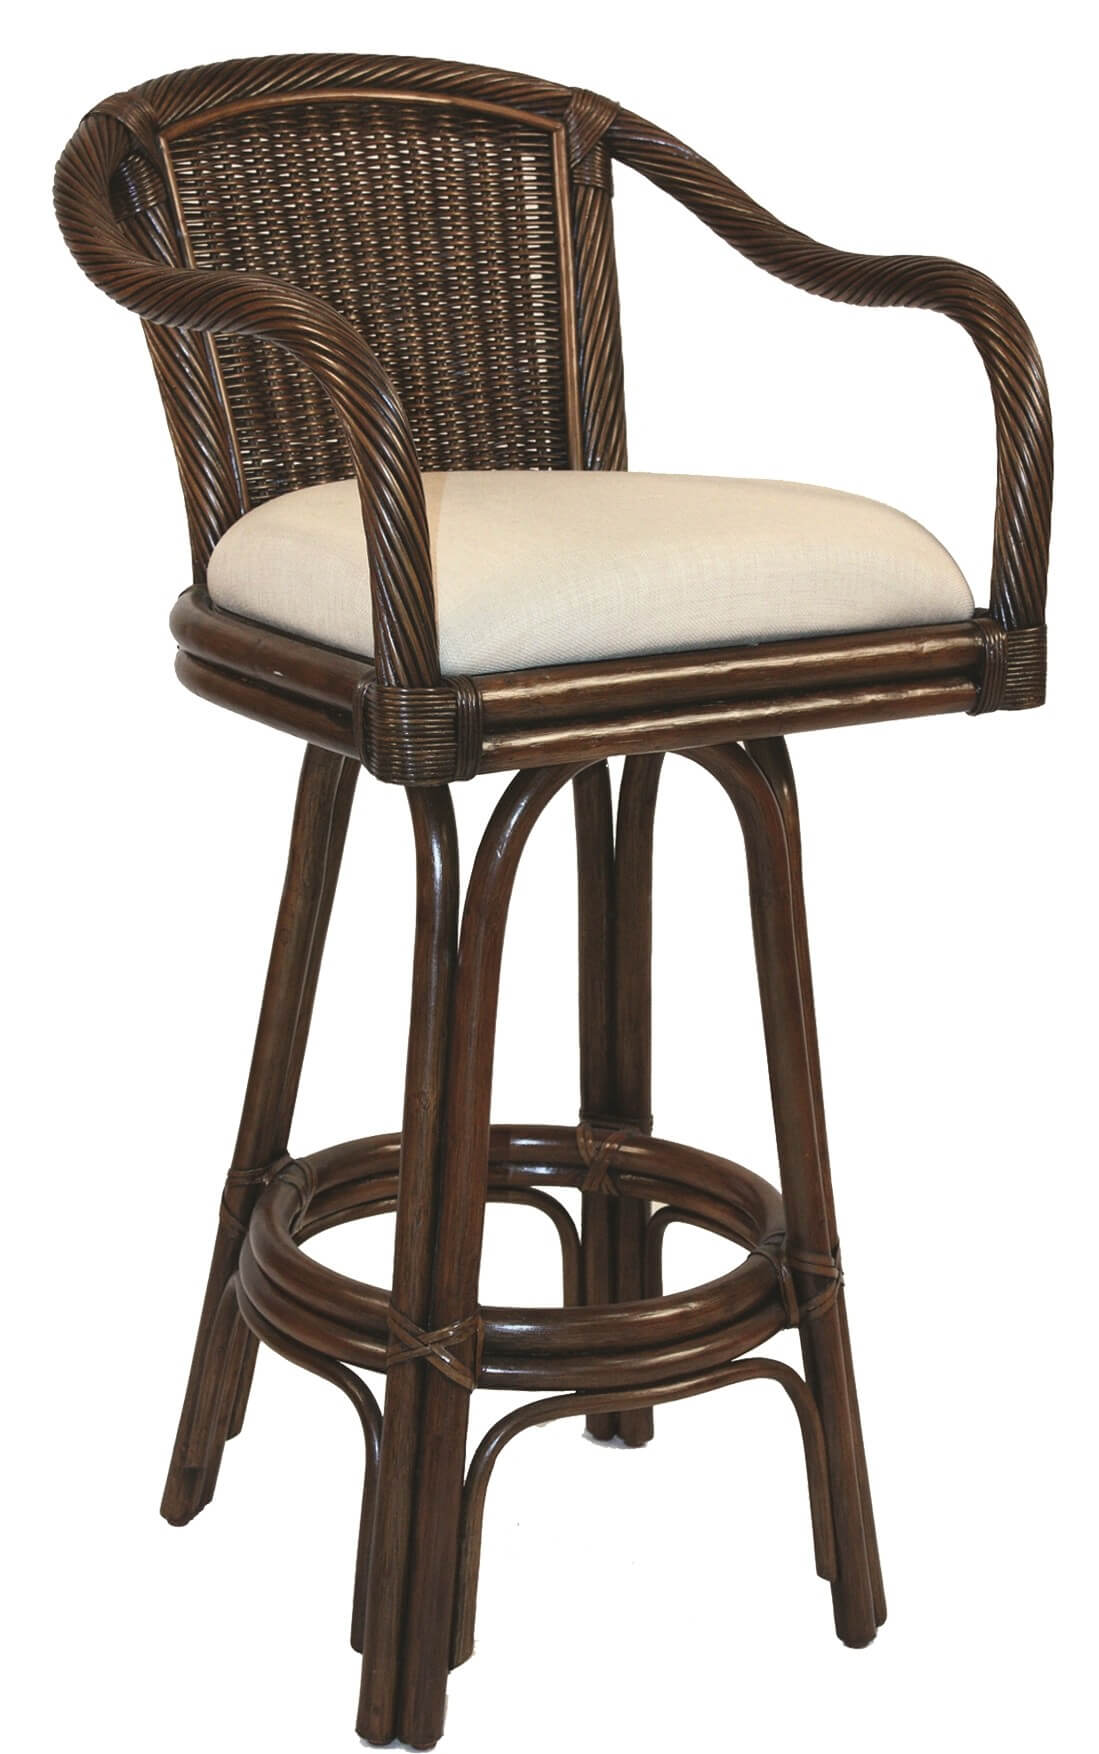 Coastal stool style with rattan back and arms.